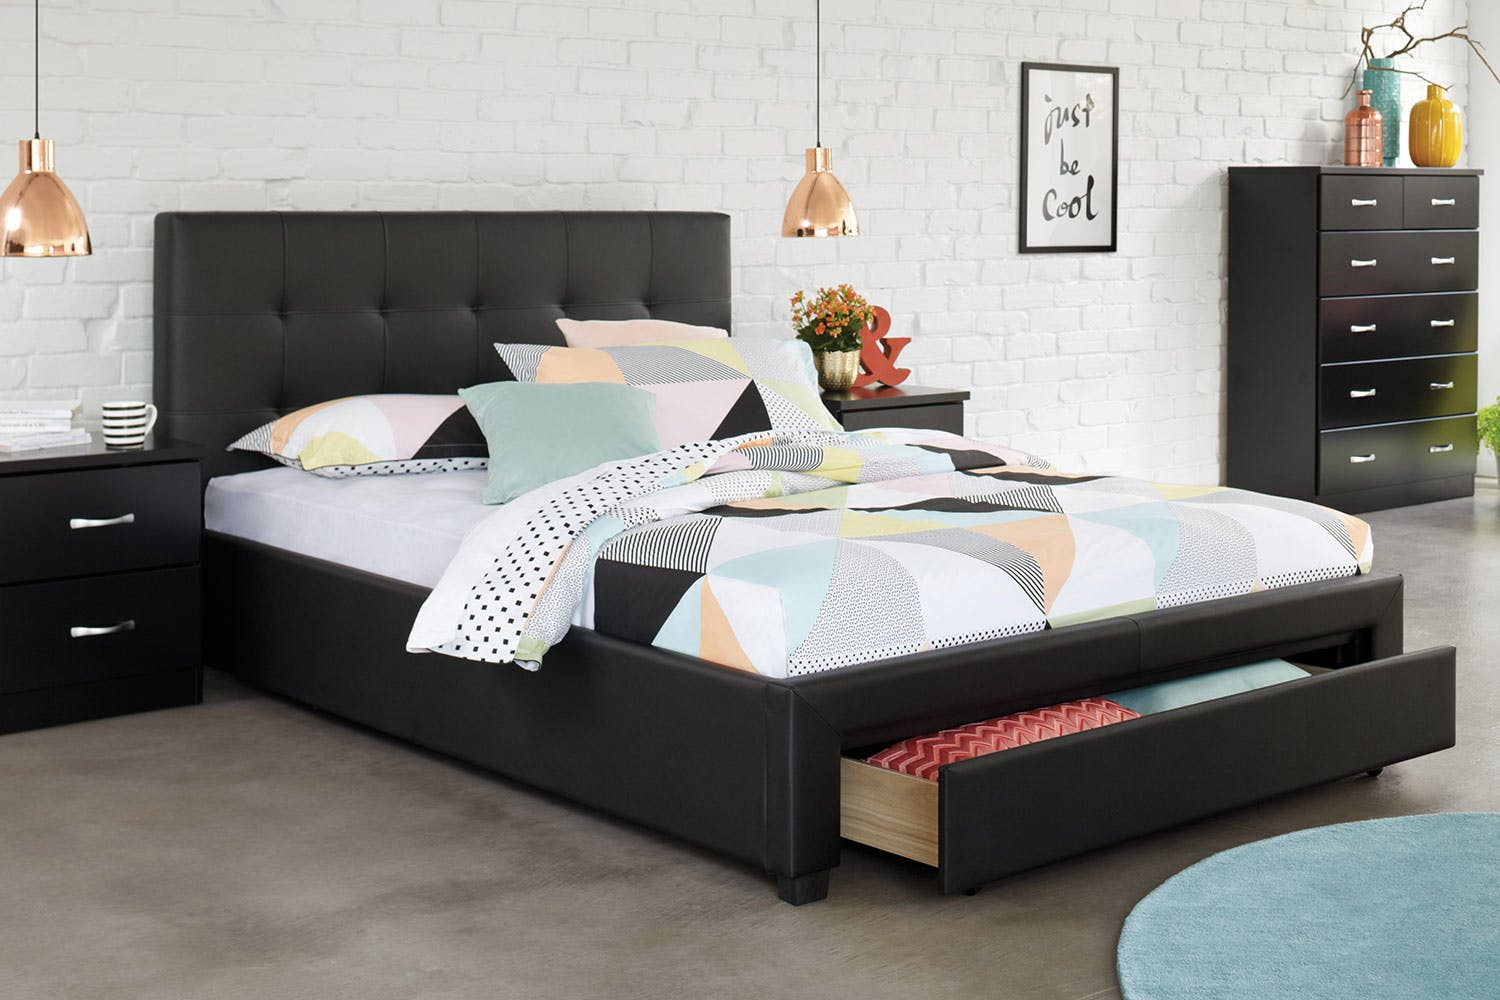 stockholm king storage bed frame by nero furniture . stockholm king storage bed frame by nero furniture  harvey norman